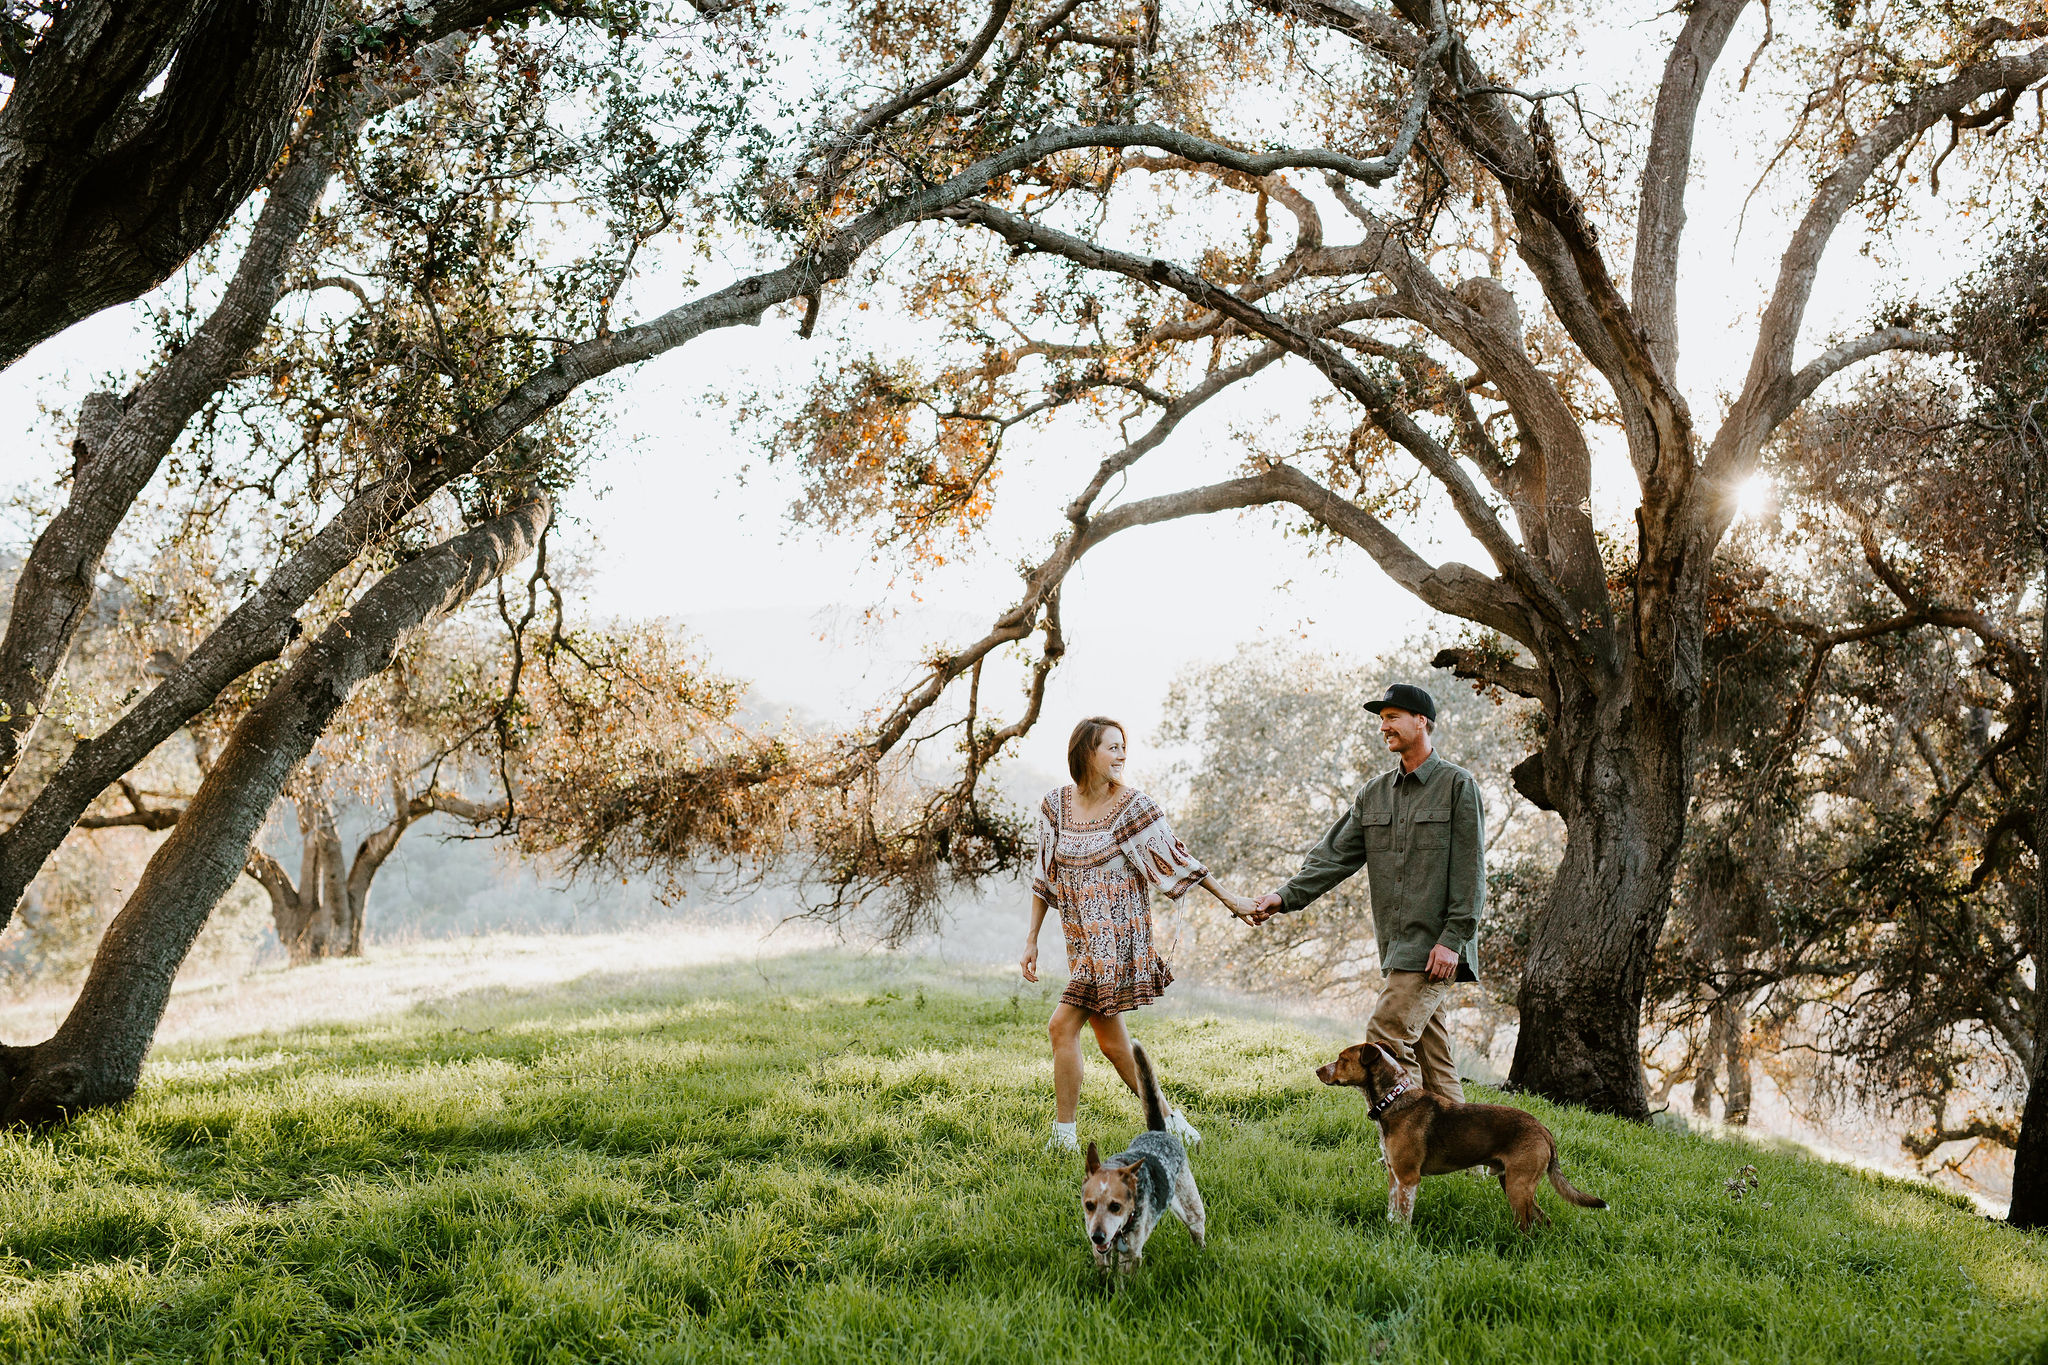 OjaiEngagementSession_Geoff&LyndsiPhotography_Eveline&Scotty40.jpg